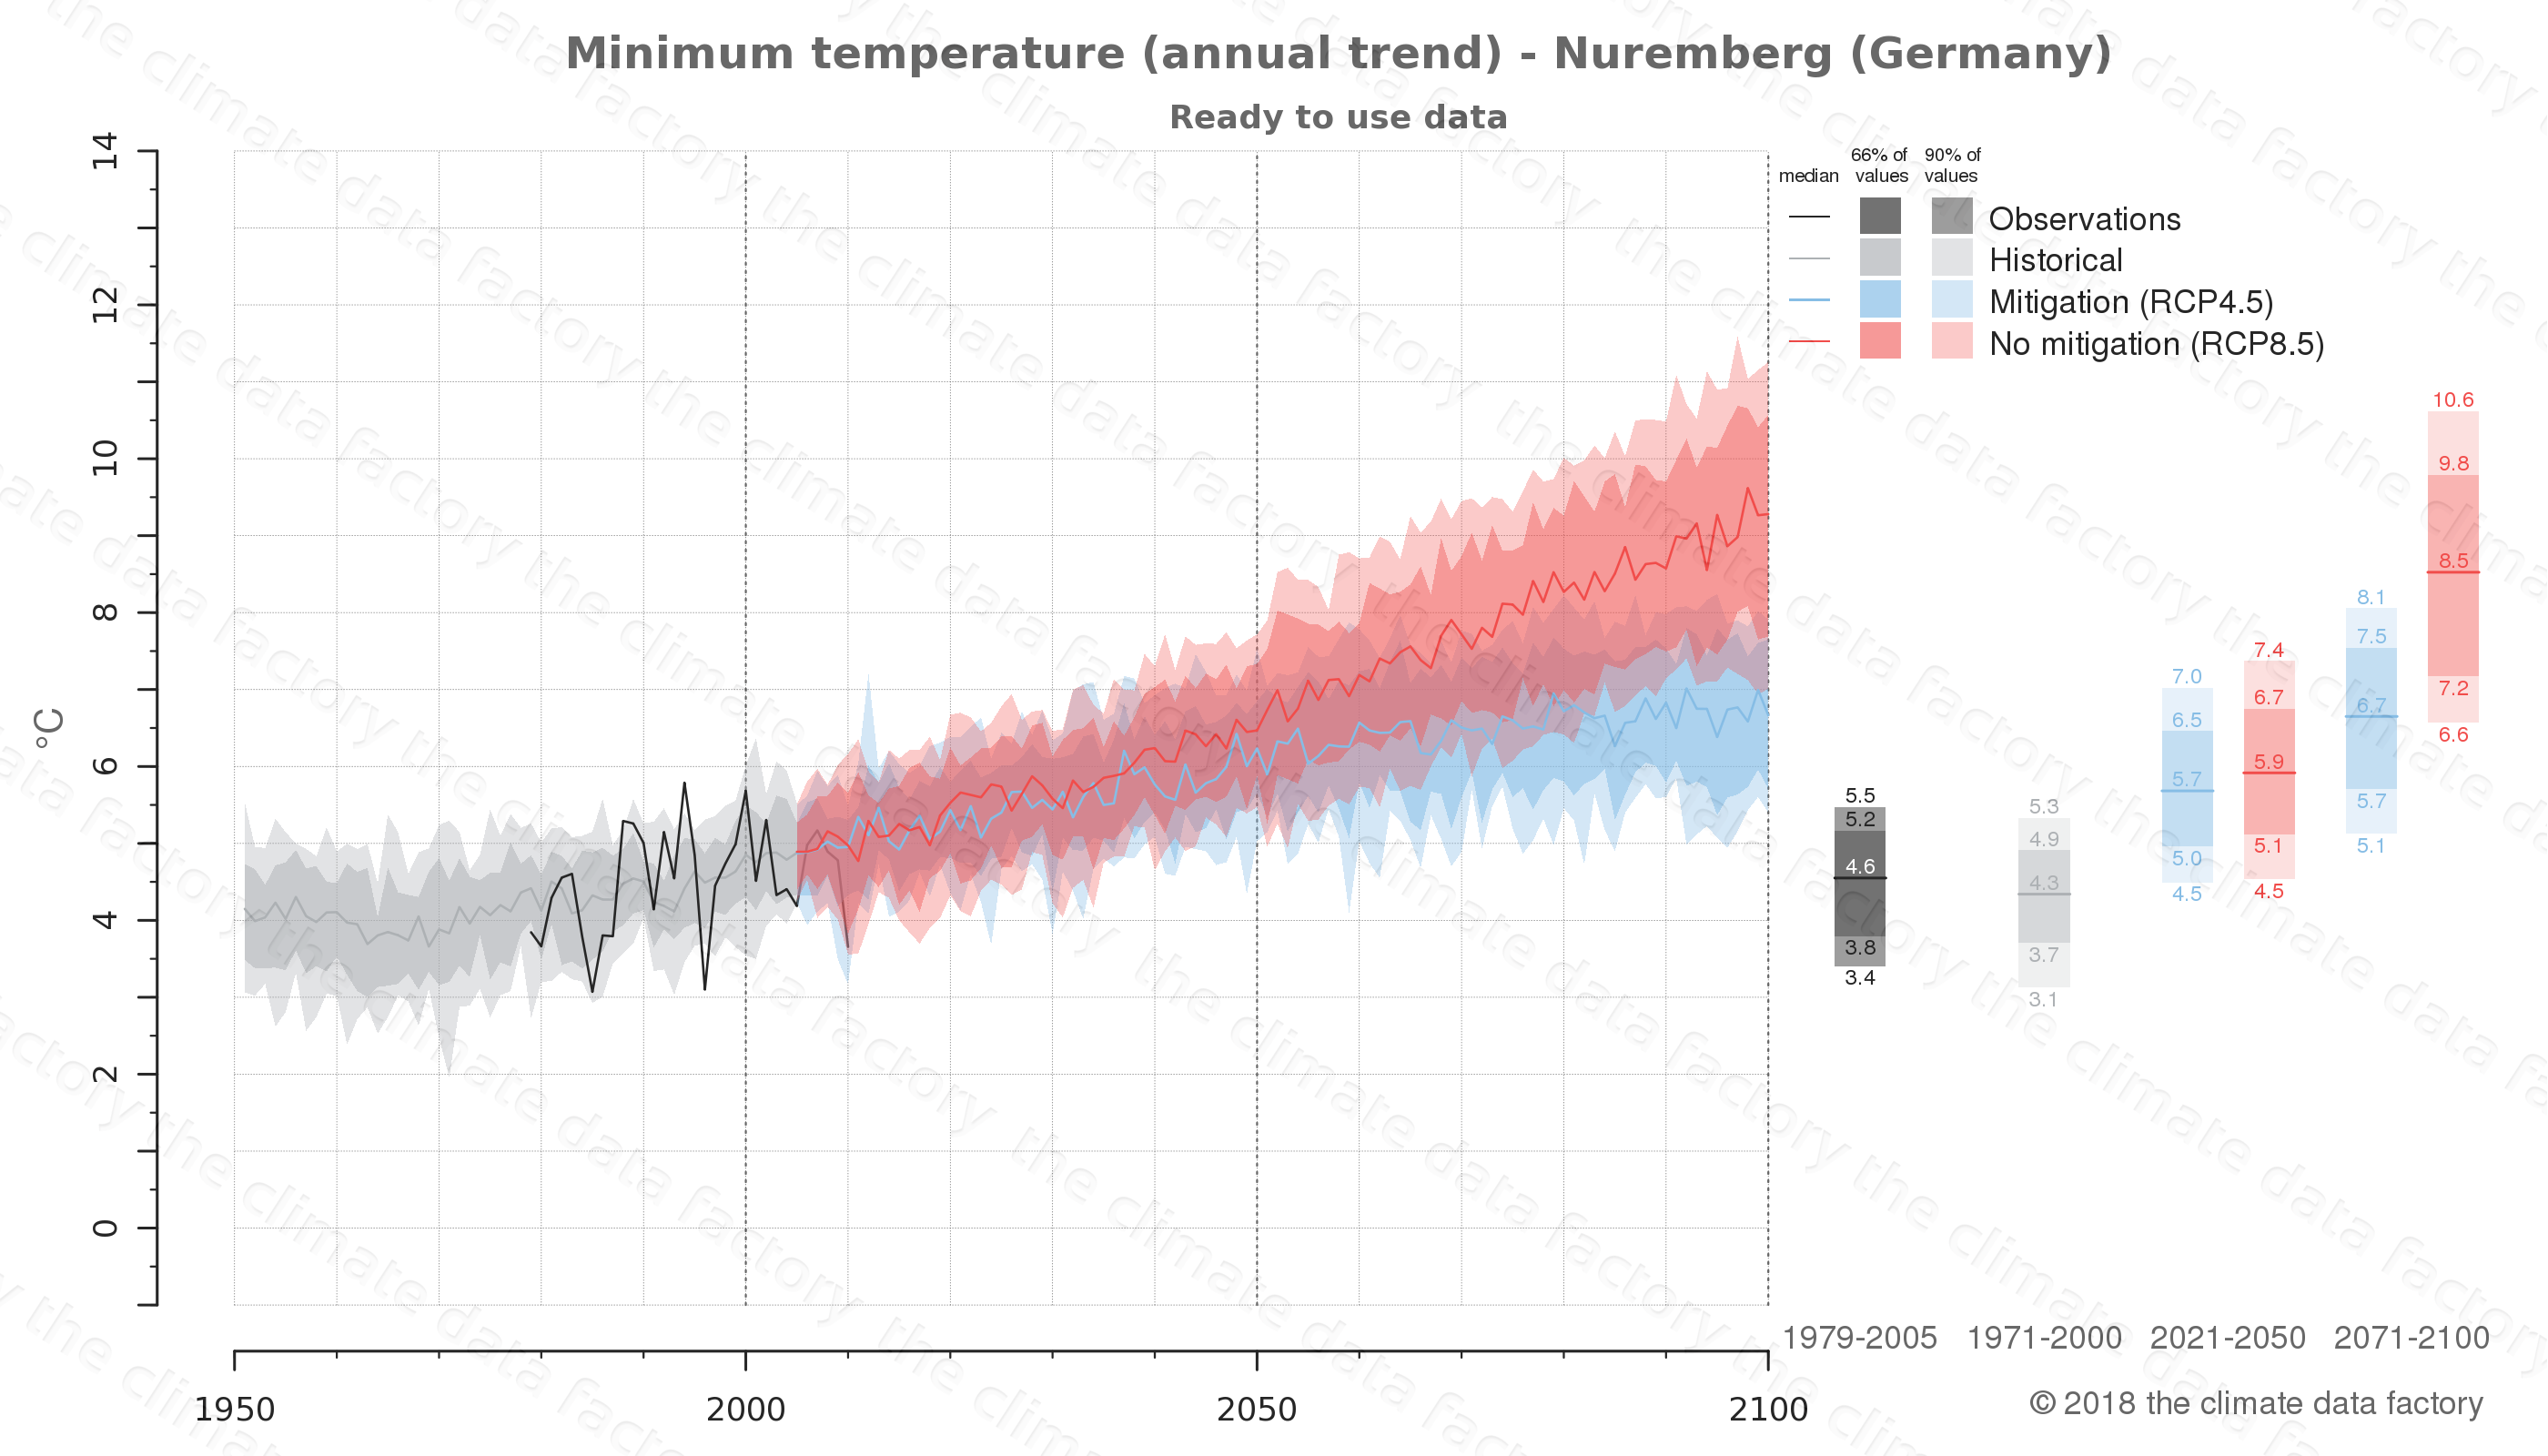 climate change data policy adaptation climate graph city data minimum-temperature nuremberg germany